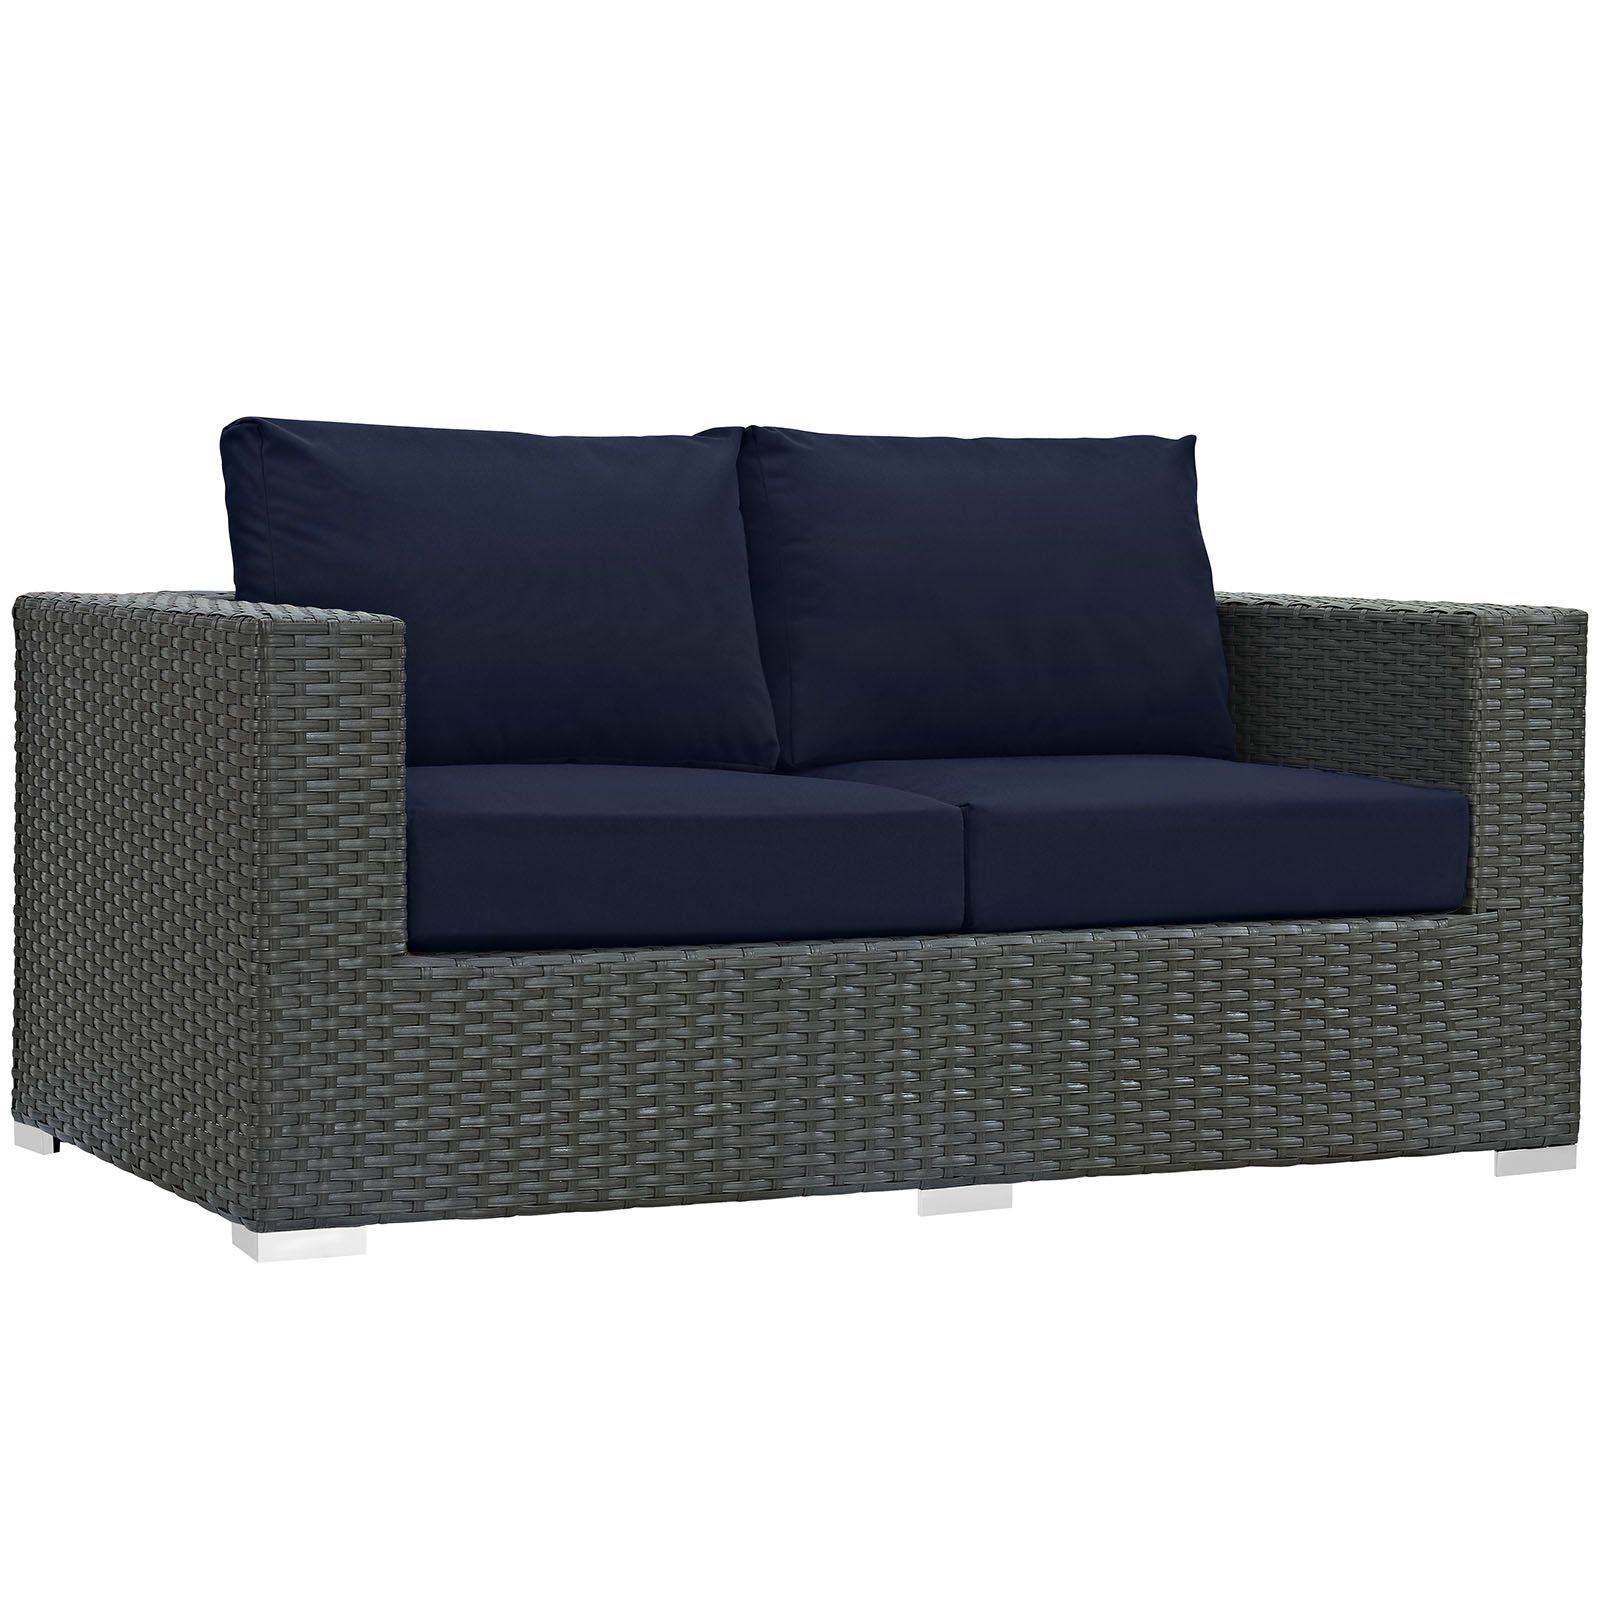 Awe Inspiring Modway Sojourn Wicker Outdoor Loveseat Canvas Navy Pabps2019 Chair Design Images Pabps2019Com